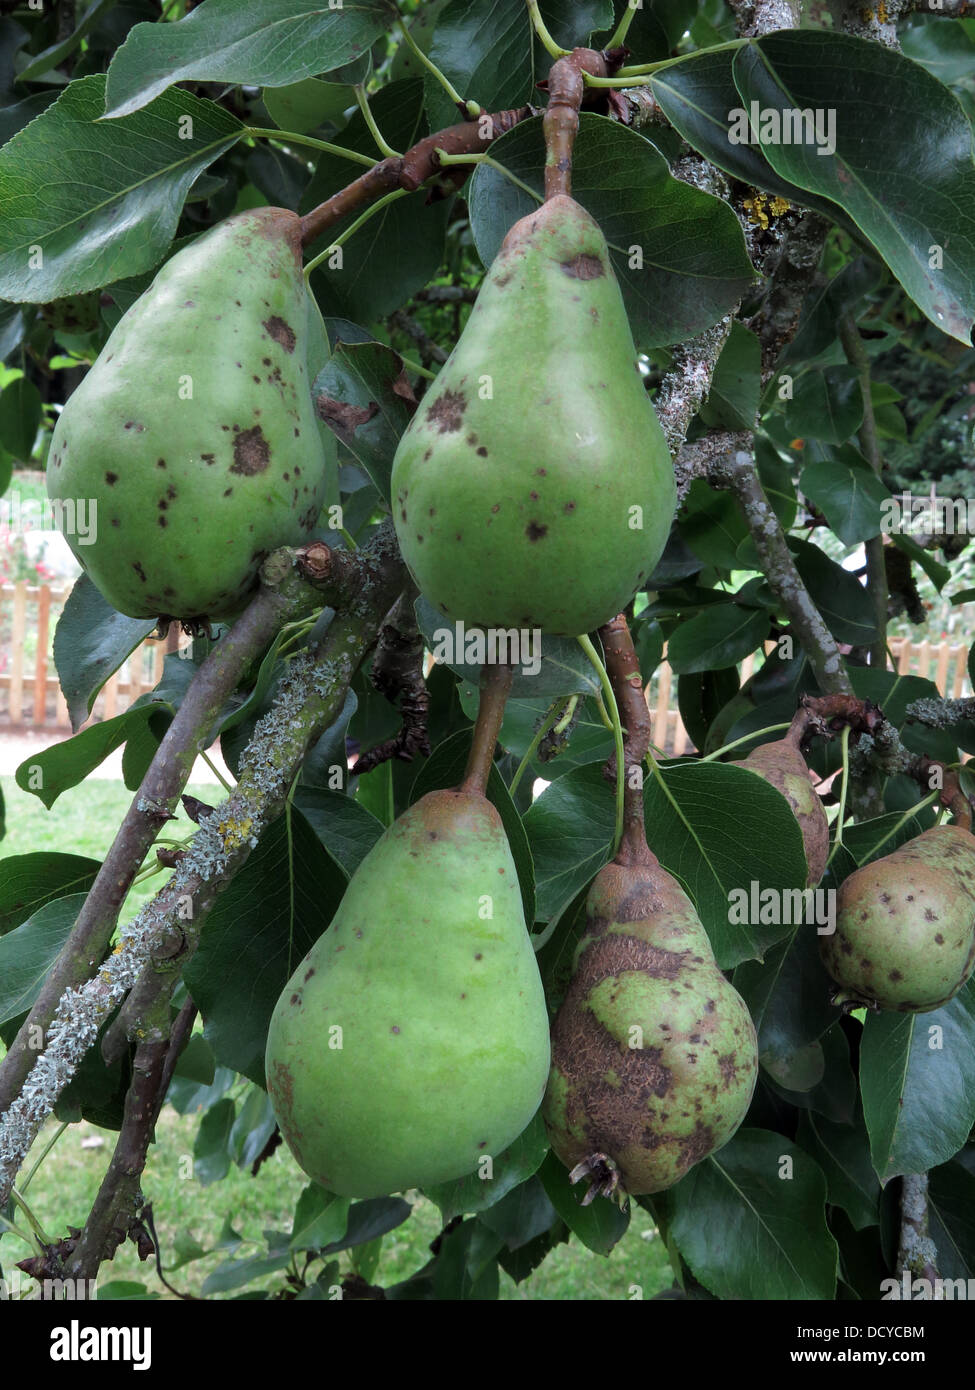 Pears on tree, autumn, ready for harvest, England, UK - Stock Image